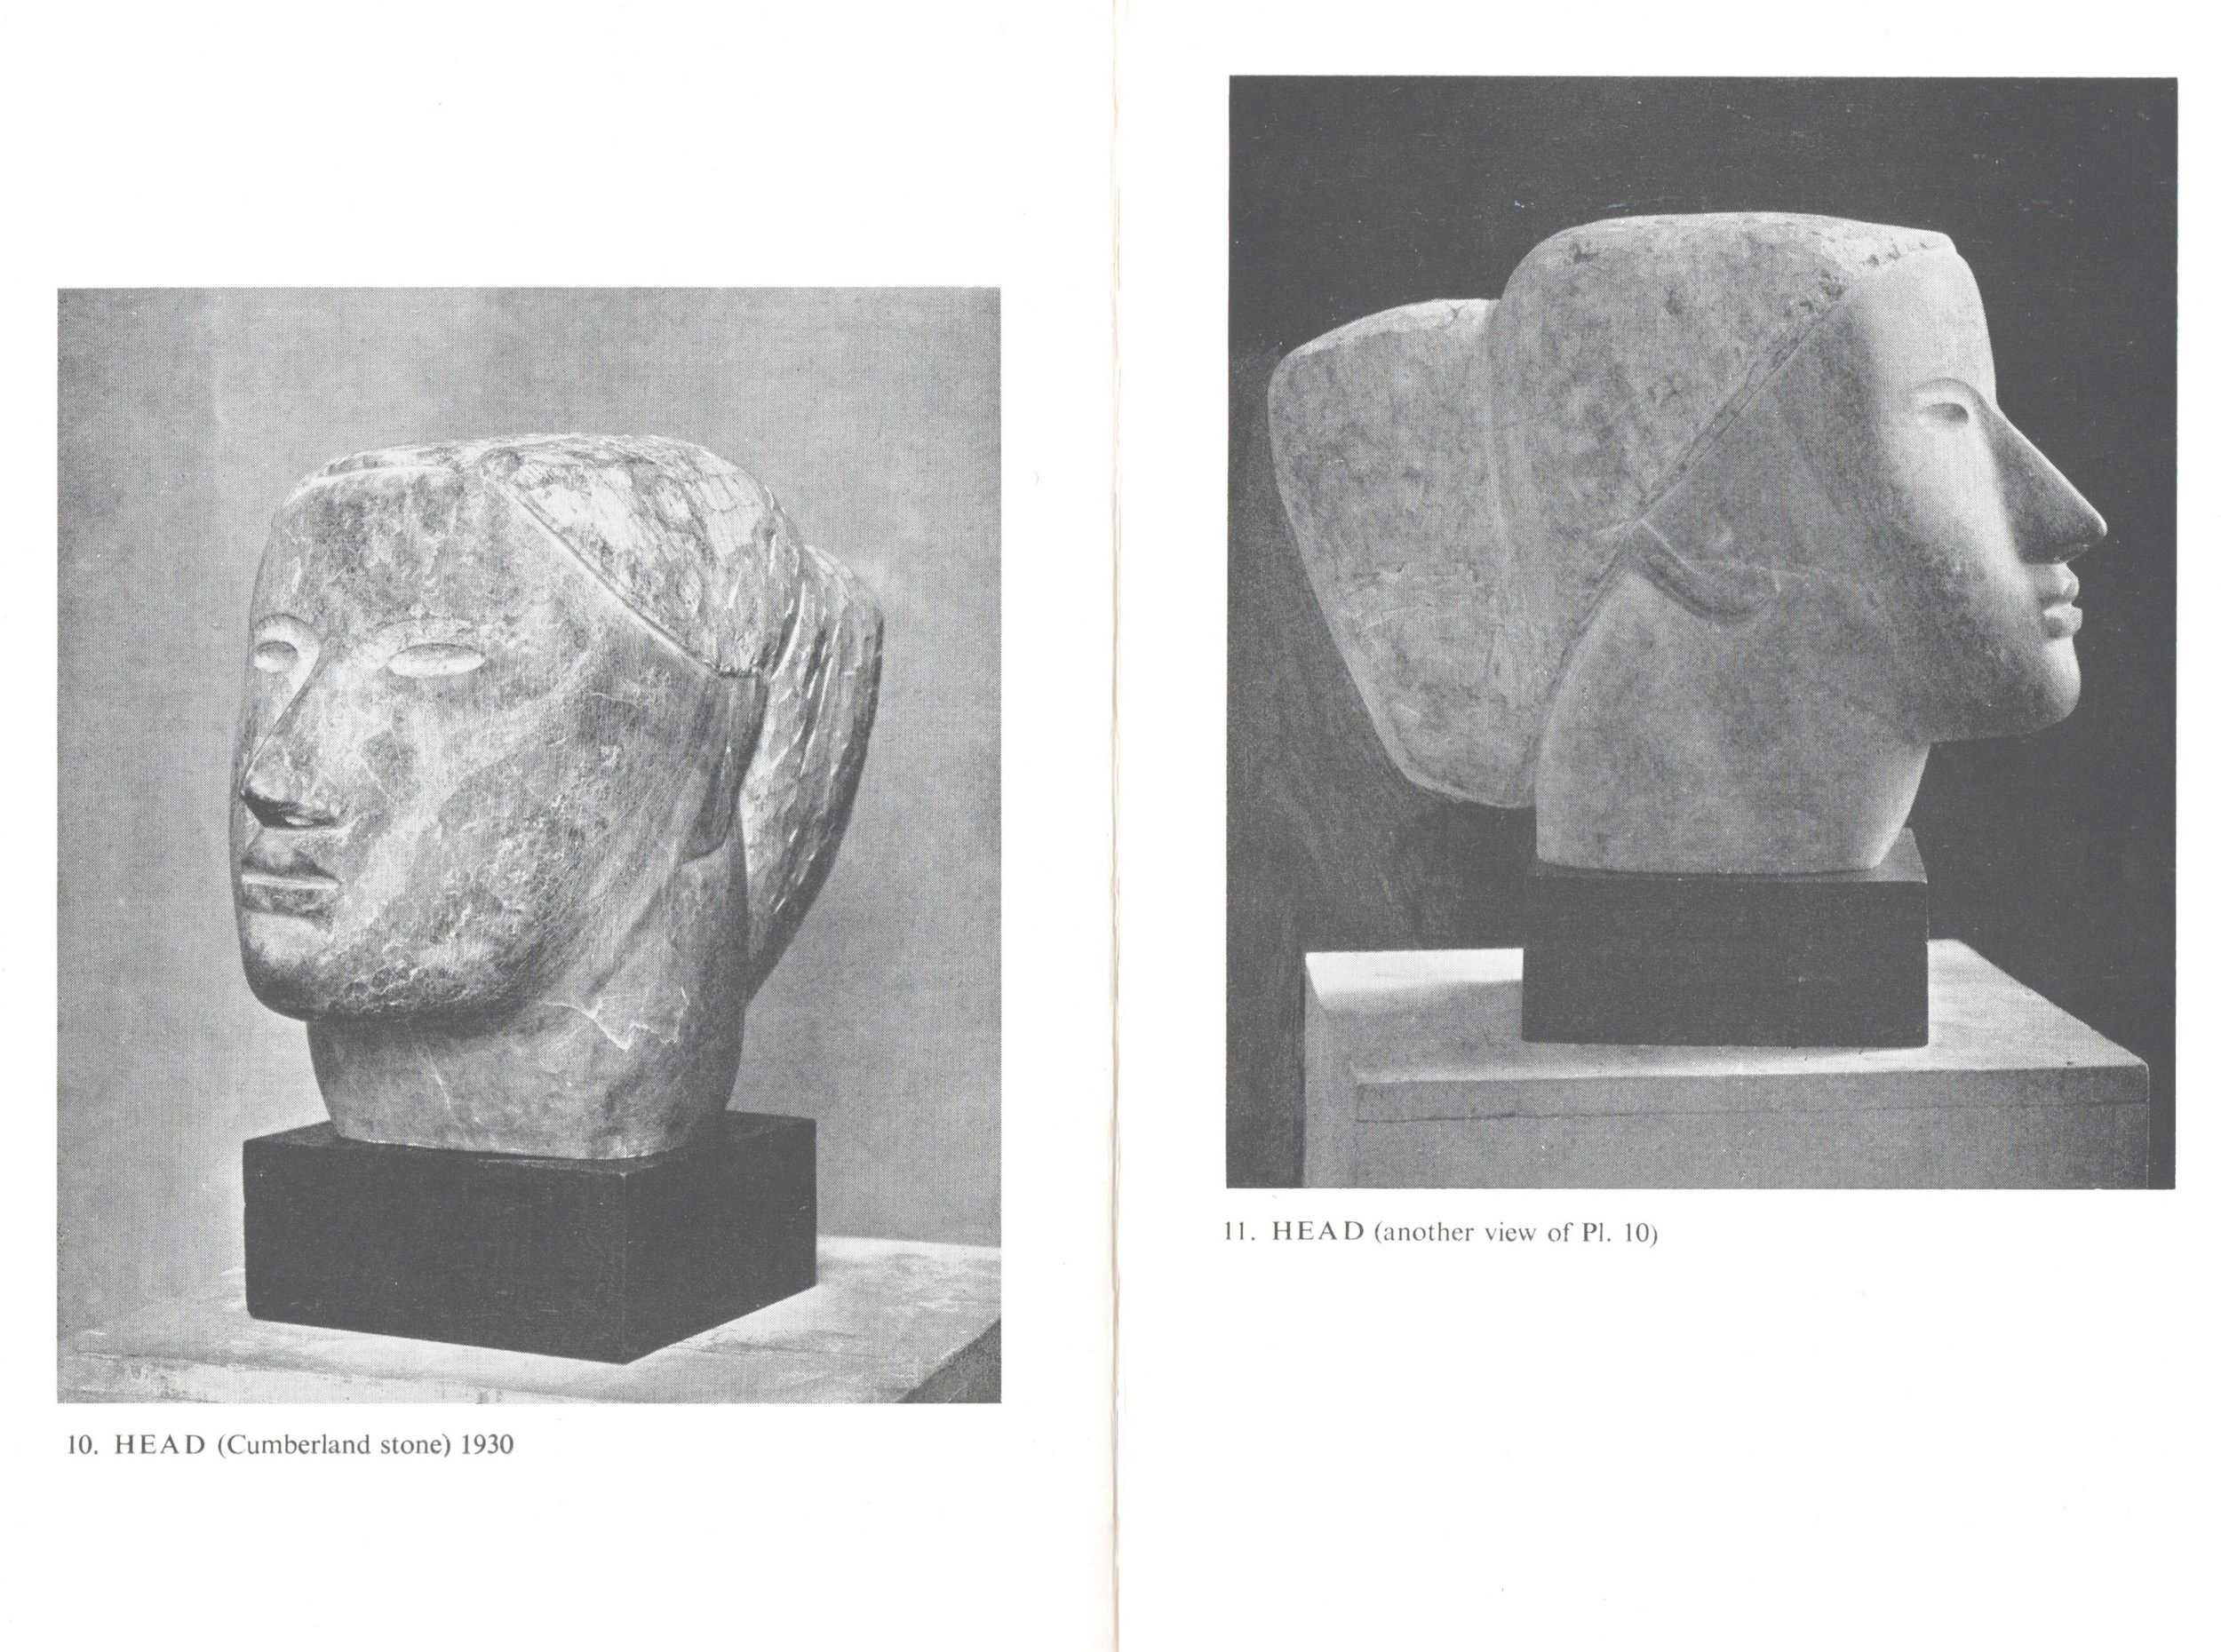 These Barbara Hepworth early sculptures influenced the design of this garment